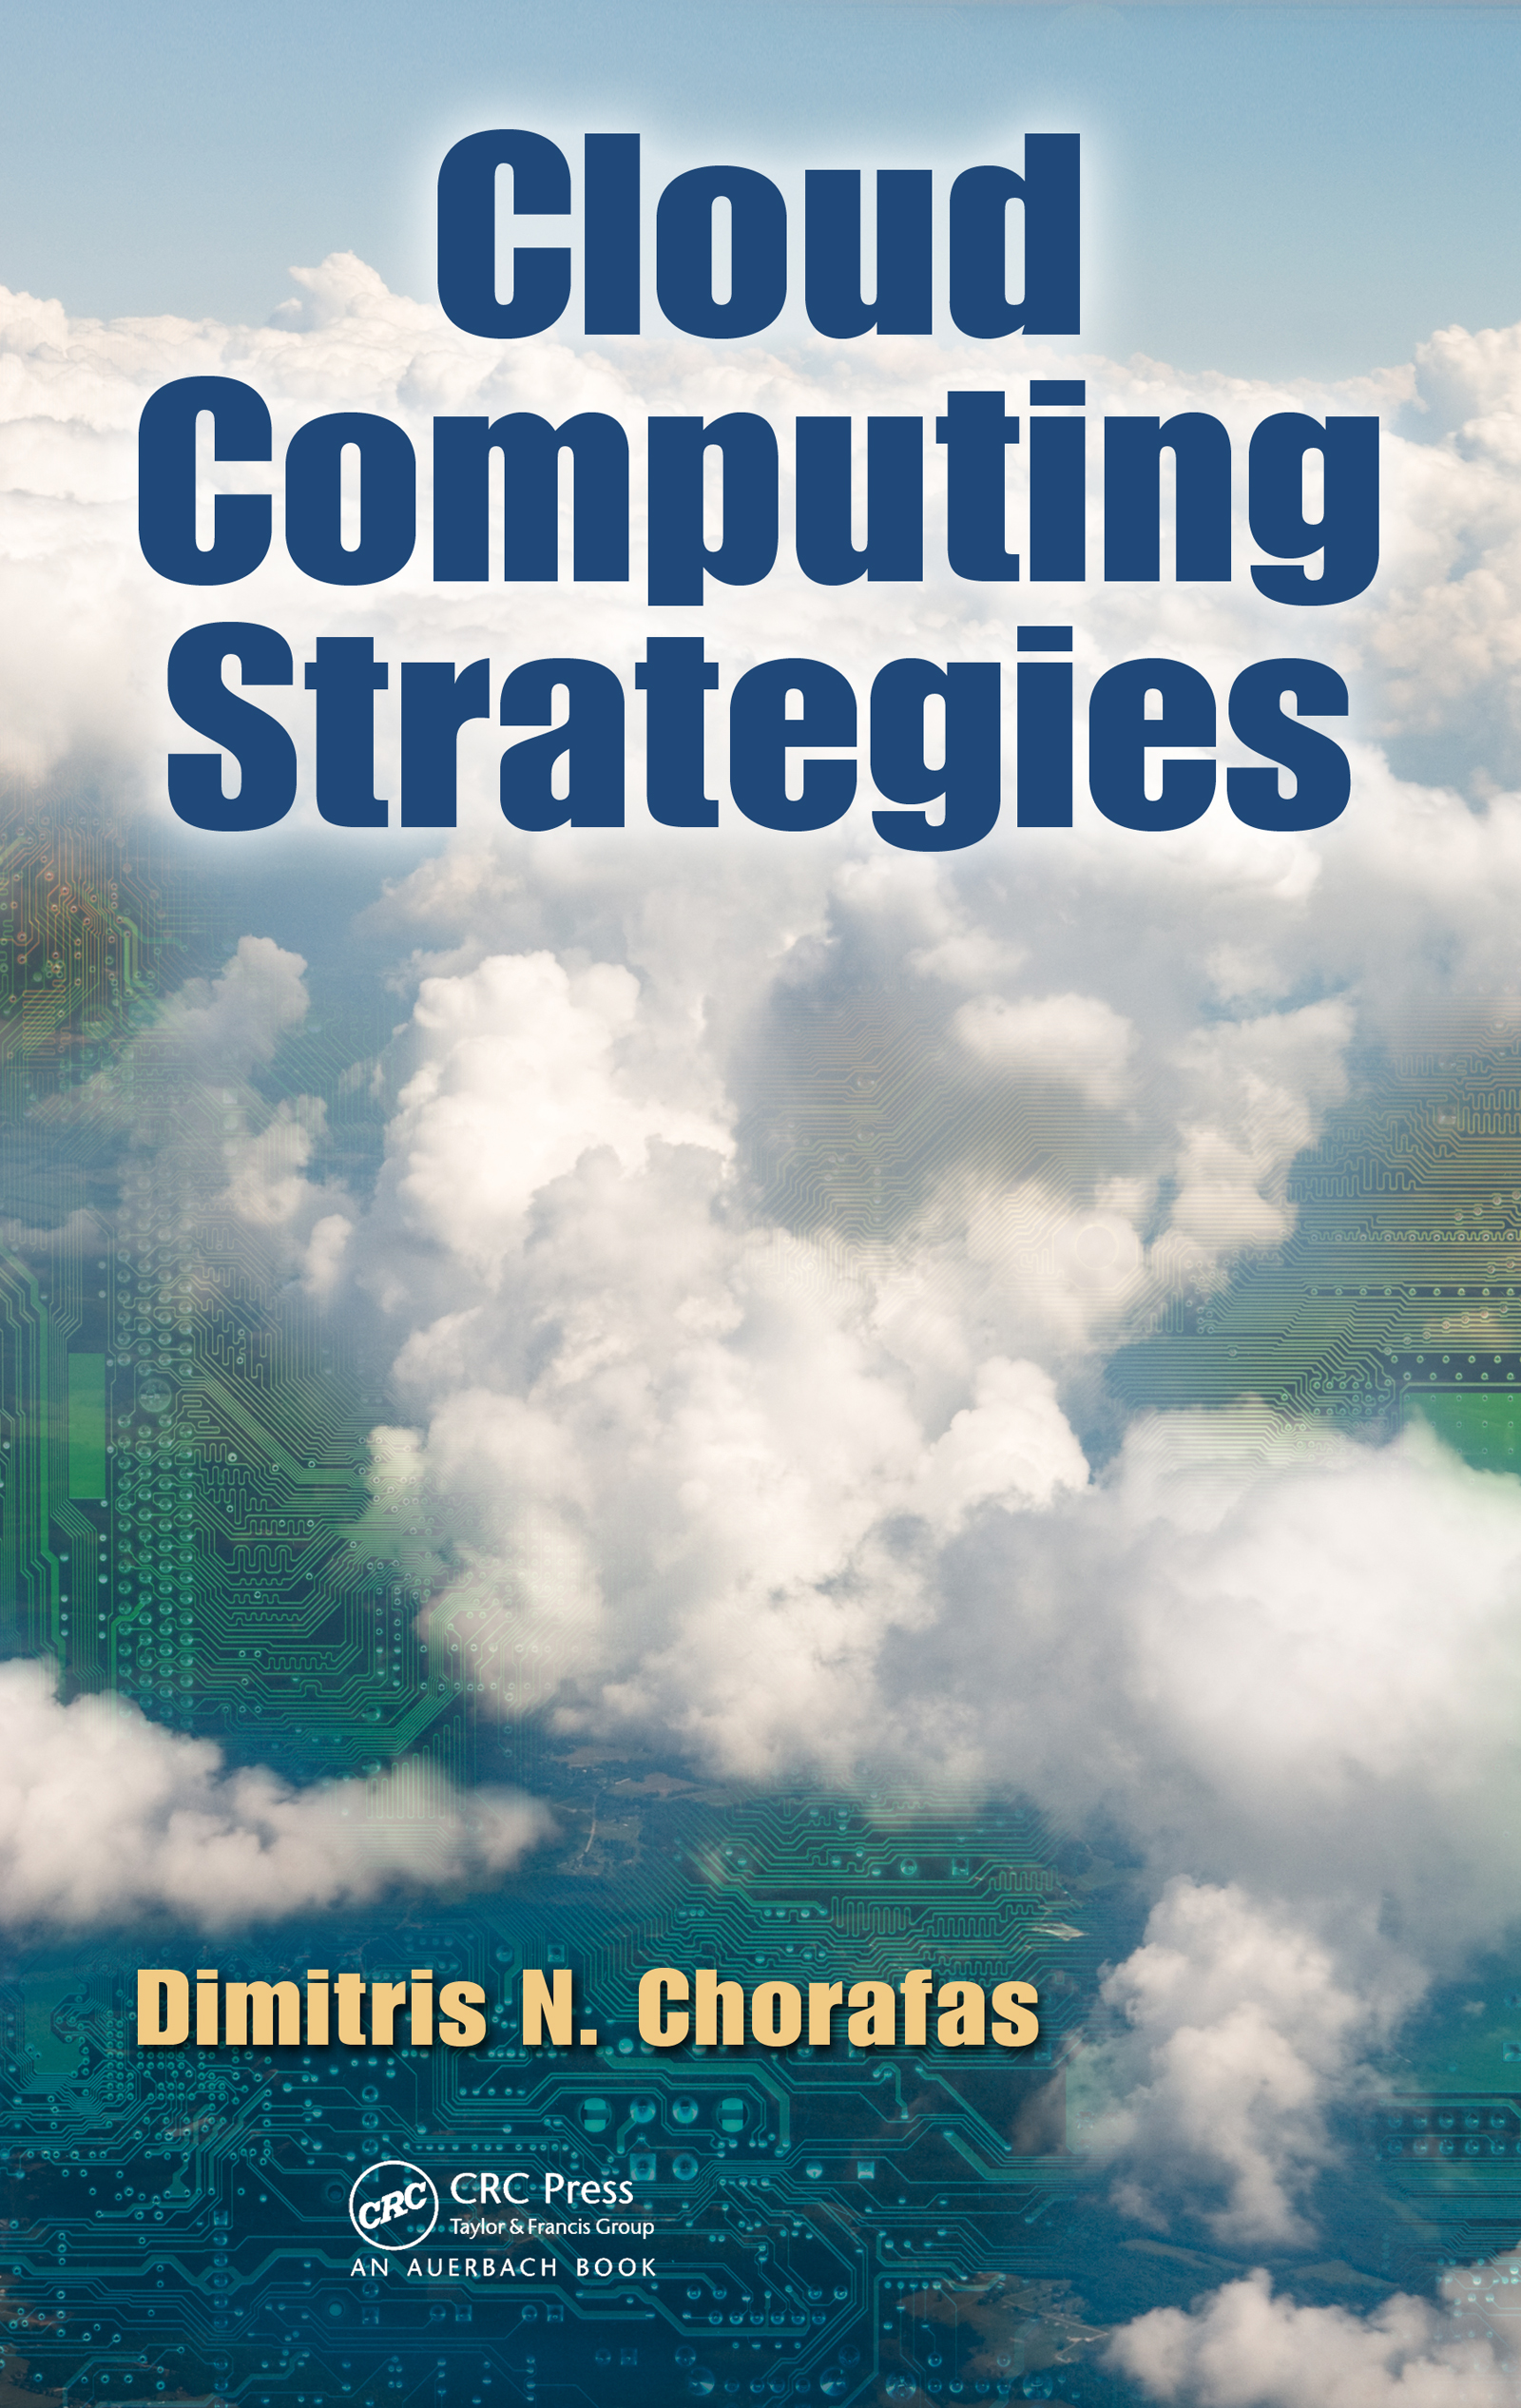 Download Ebook Cloud Computing Strategies by Dimitris N. Chorafas Pdf